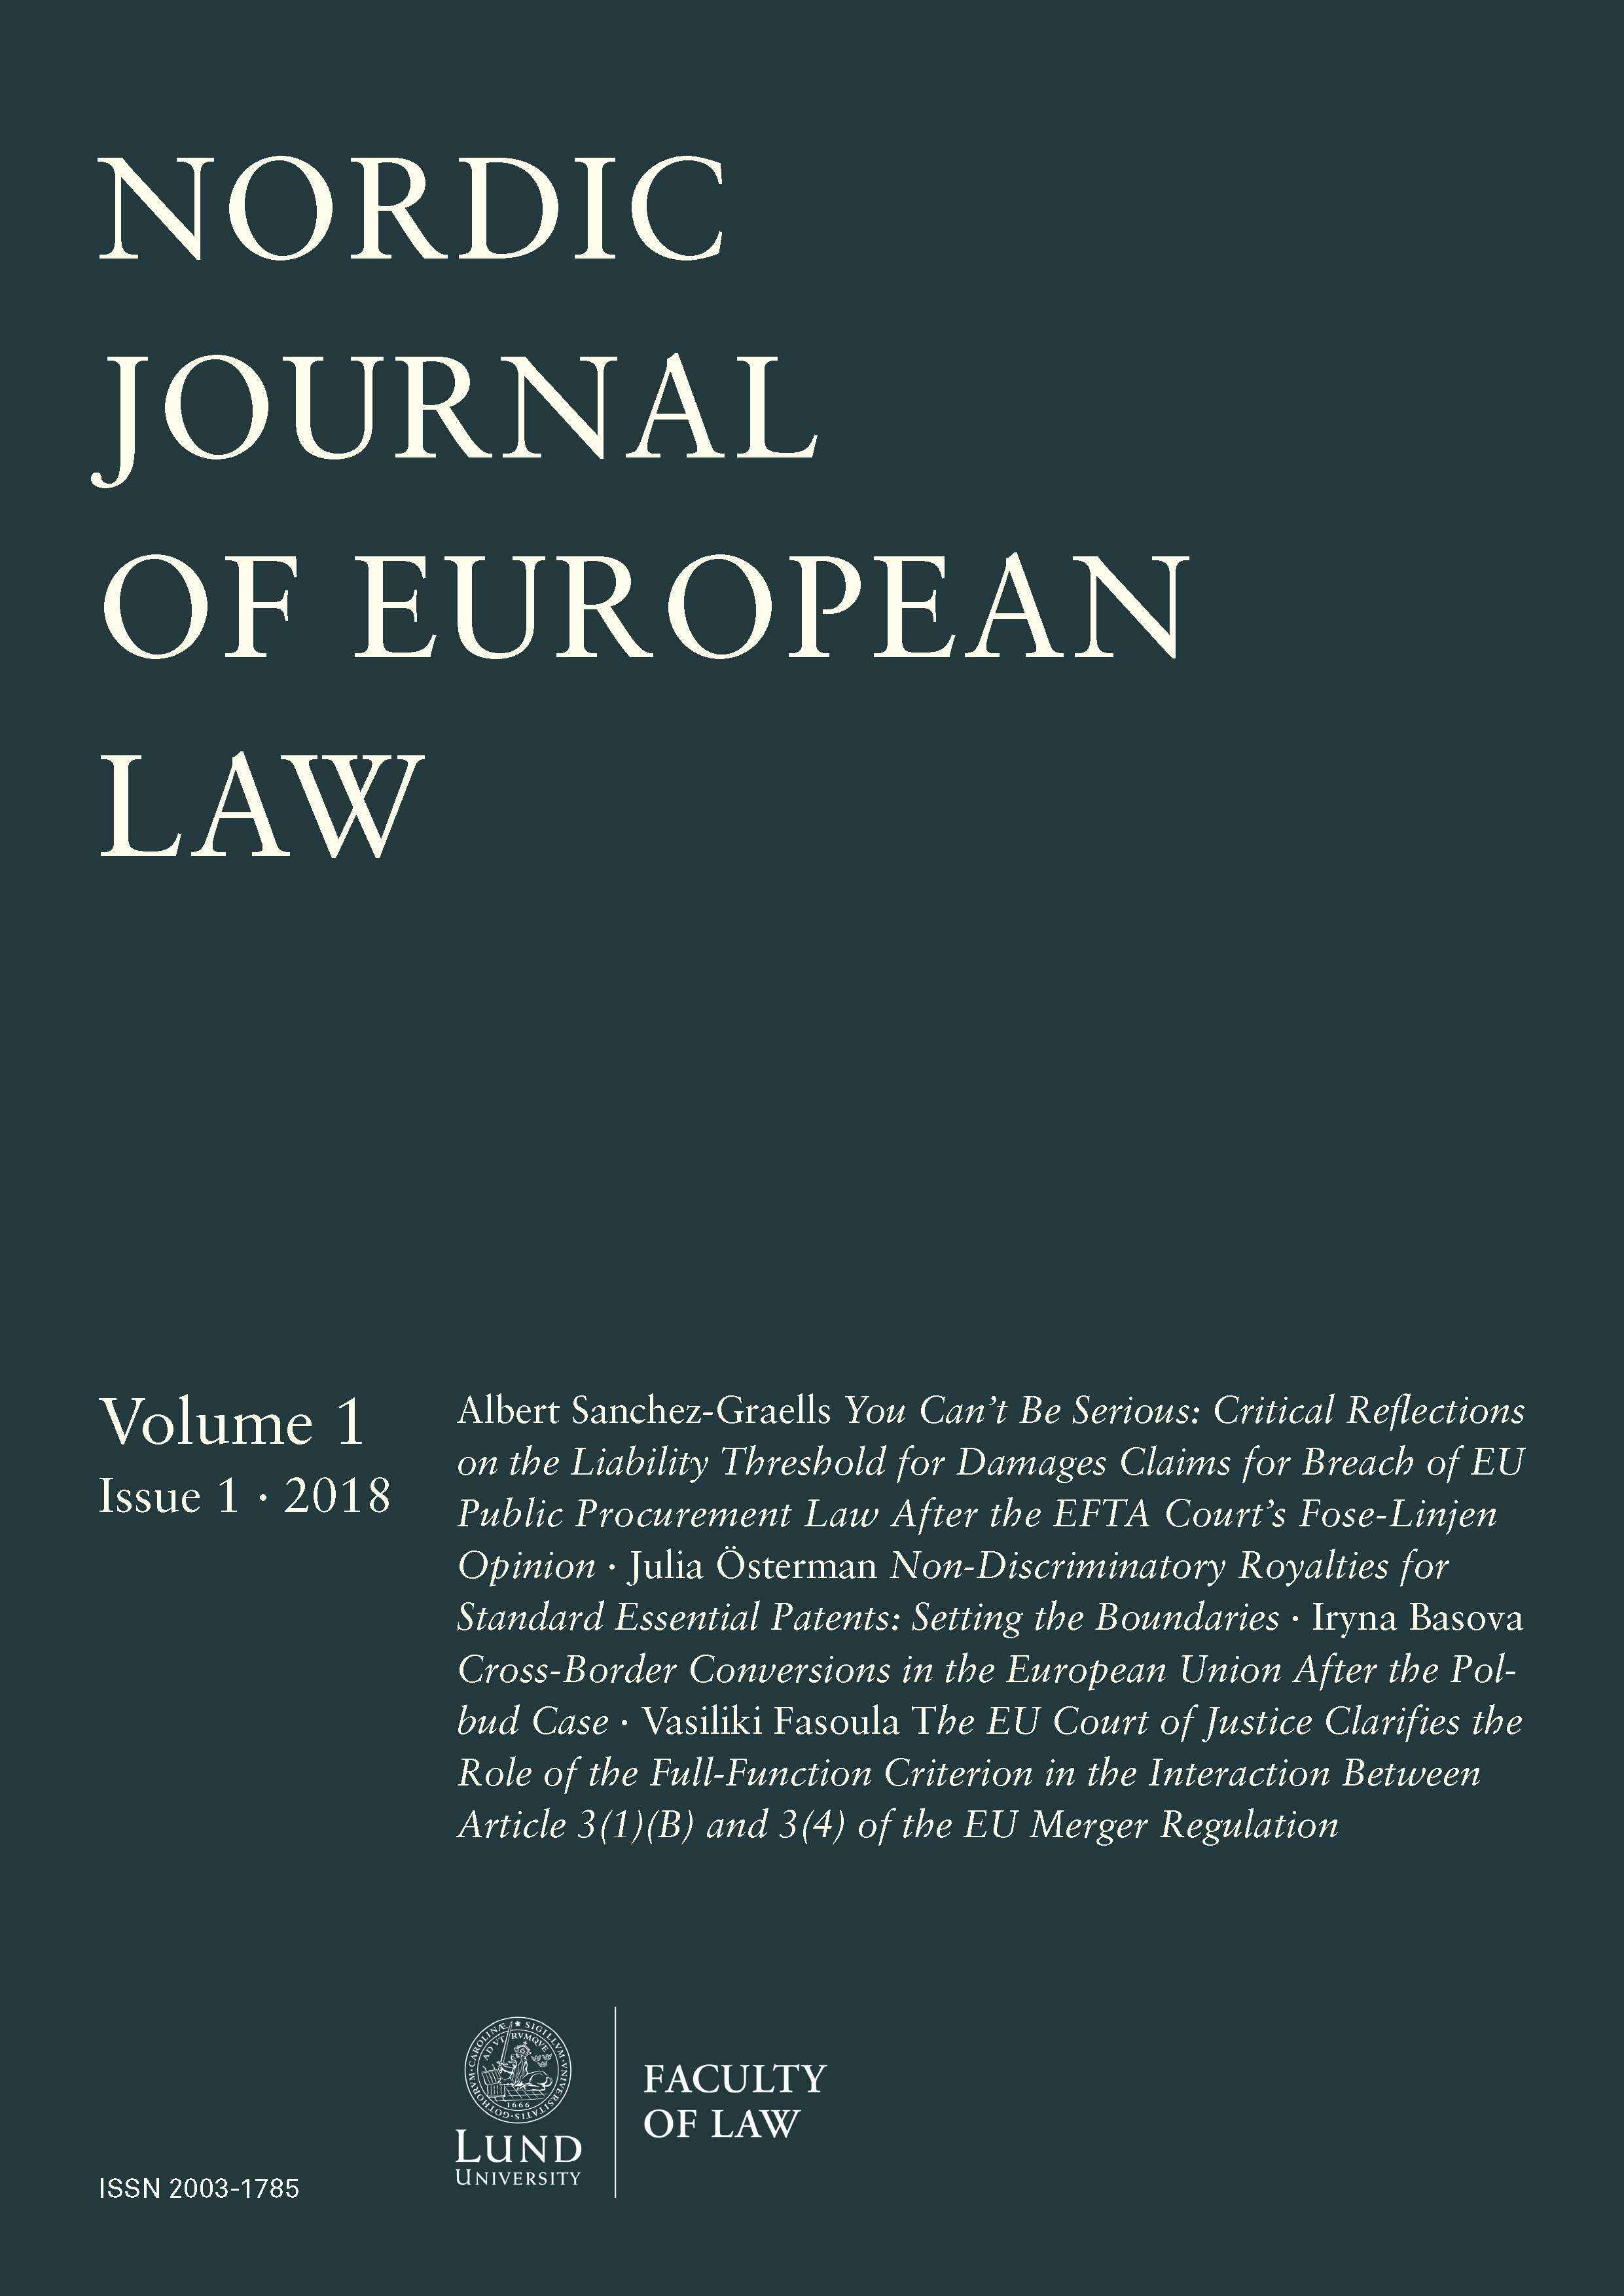 Nordic Journal of European Law